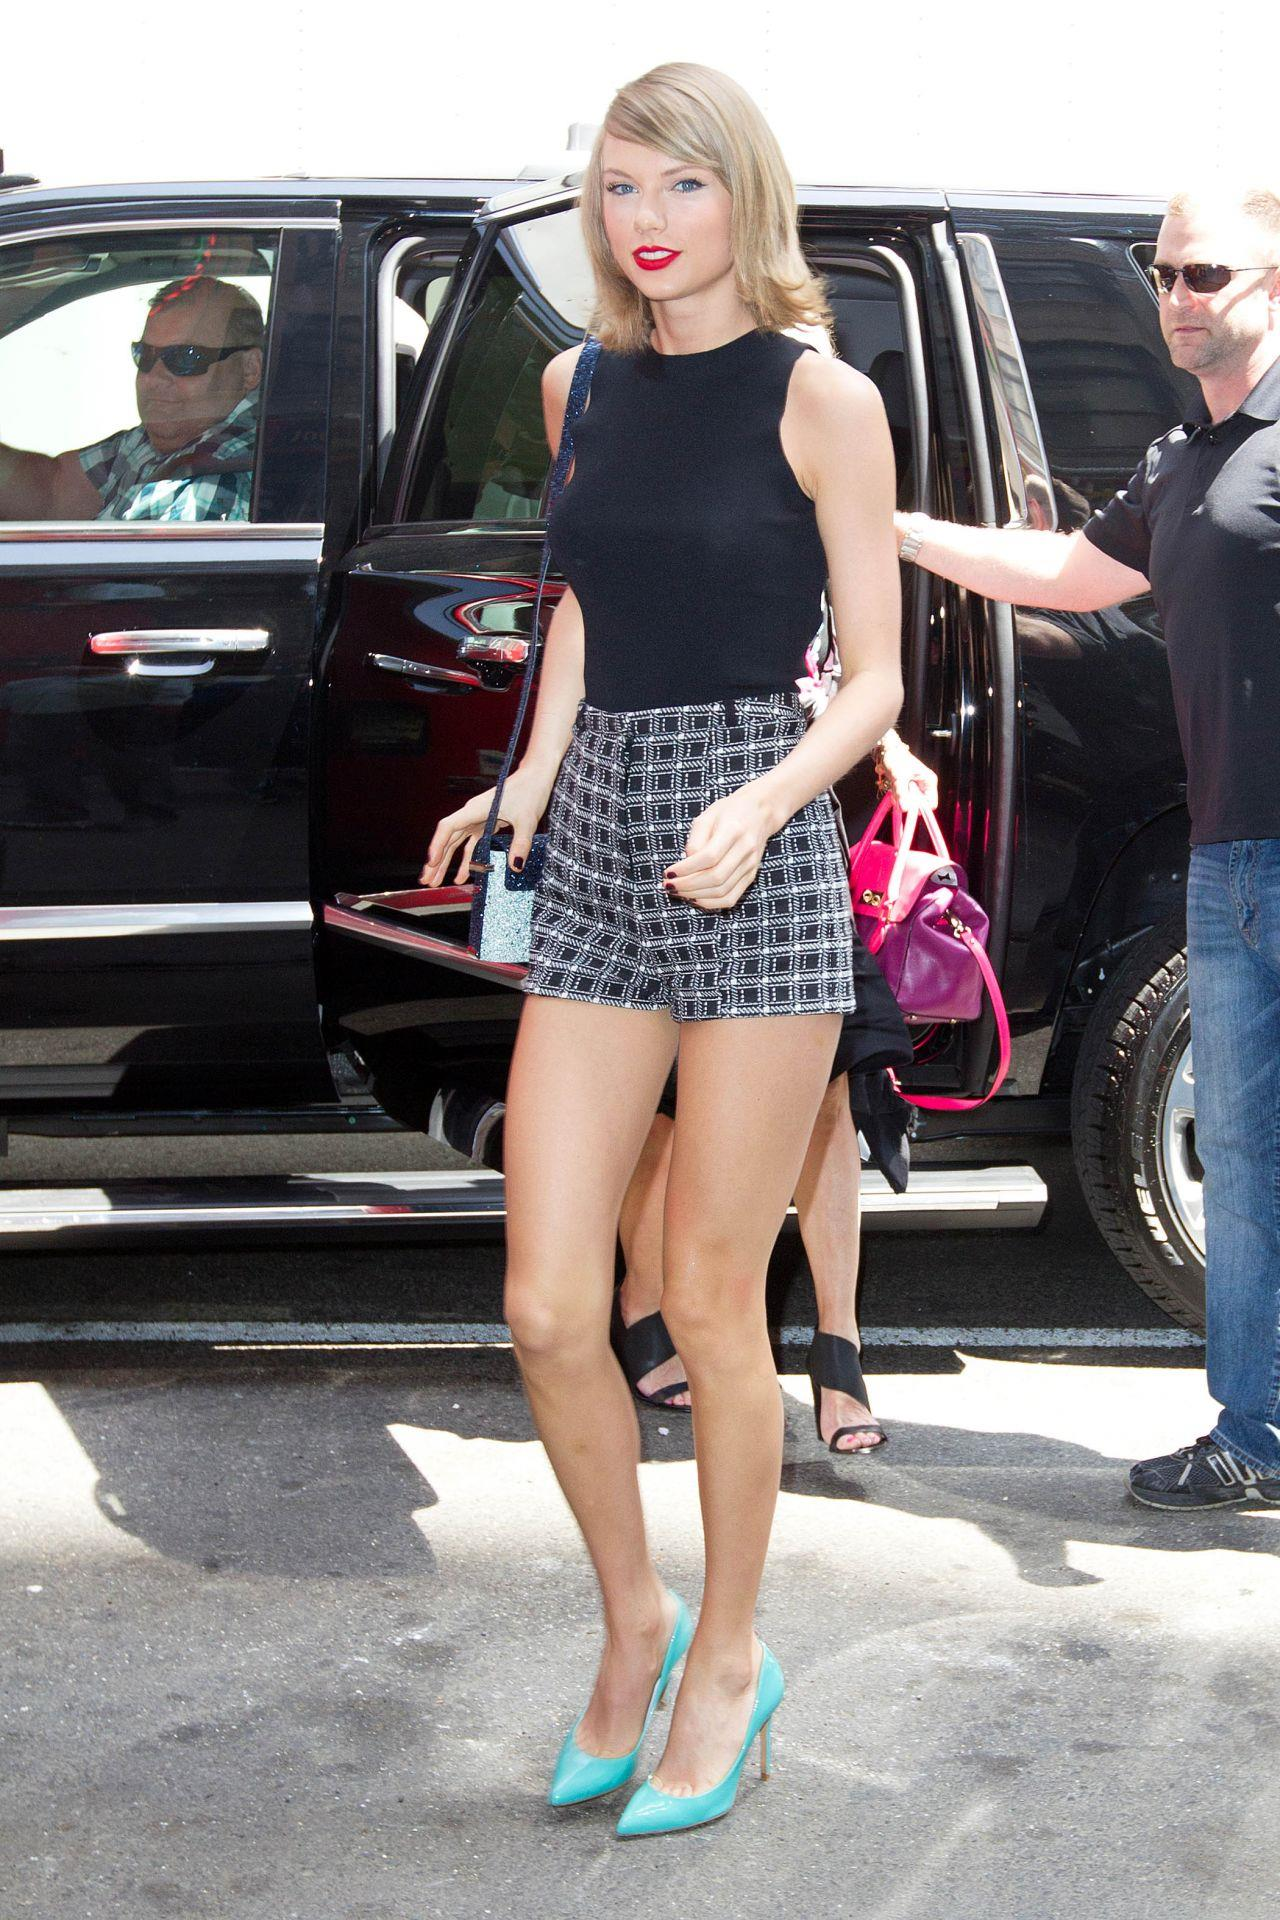 Taylor Swift Street Style Outfit Shows Off Her Legs In A Pair Of Short Shorts At Nyc